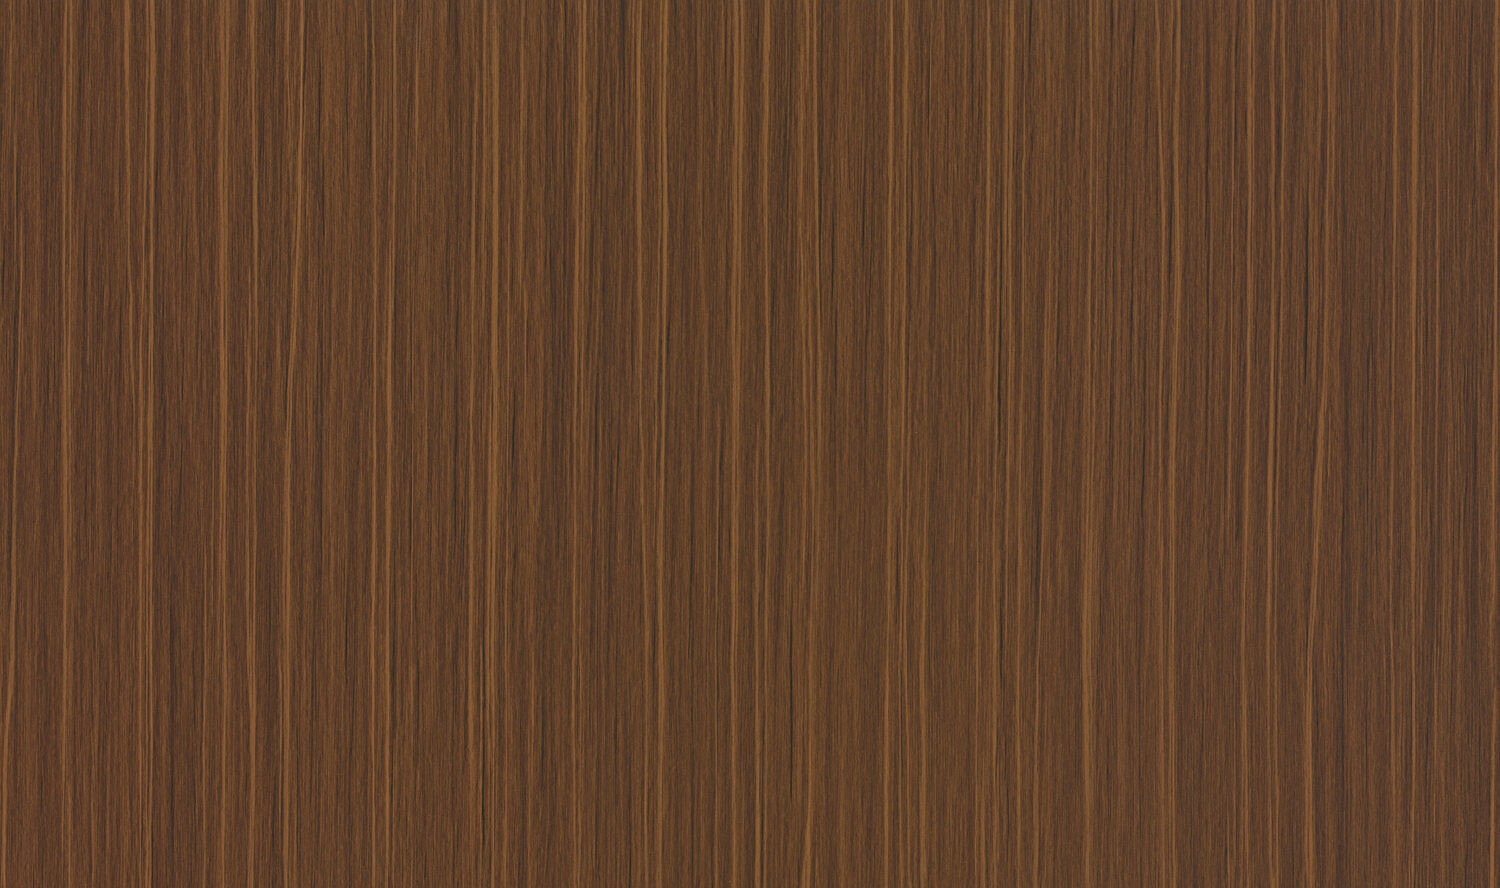 1MM international, South Supreme Wooden Laminates For Wardrobes-Sundek International